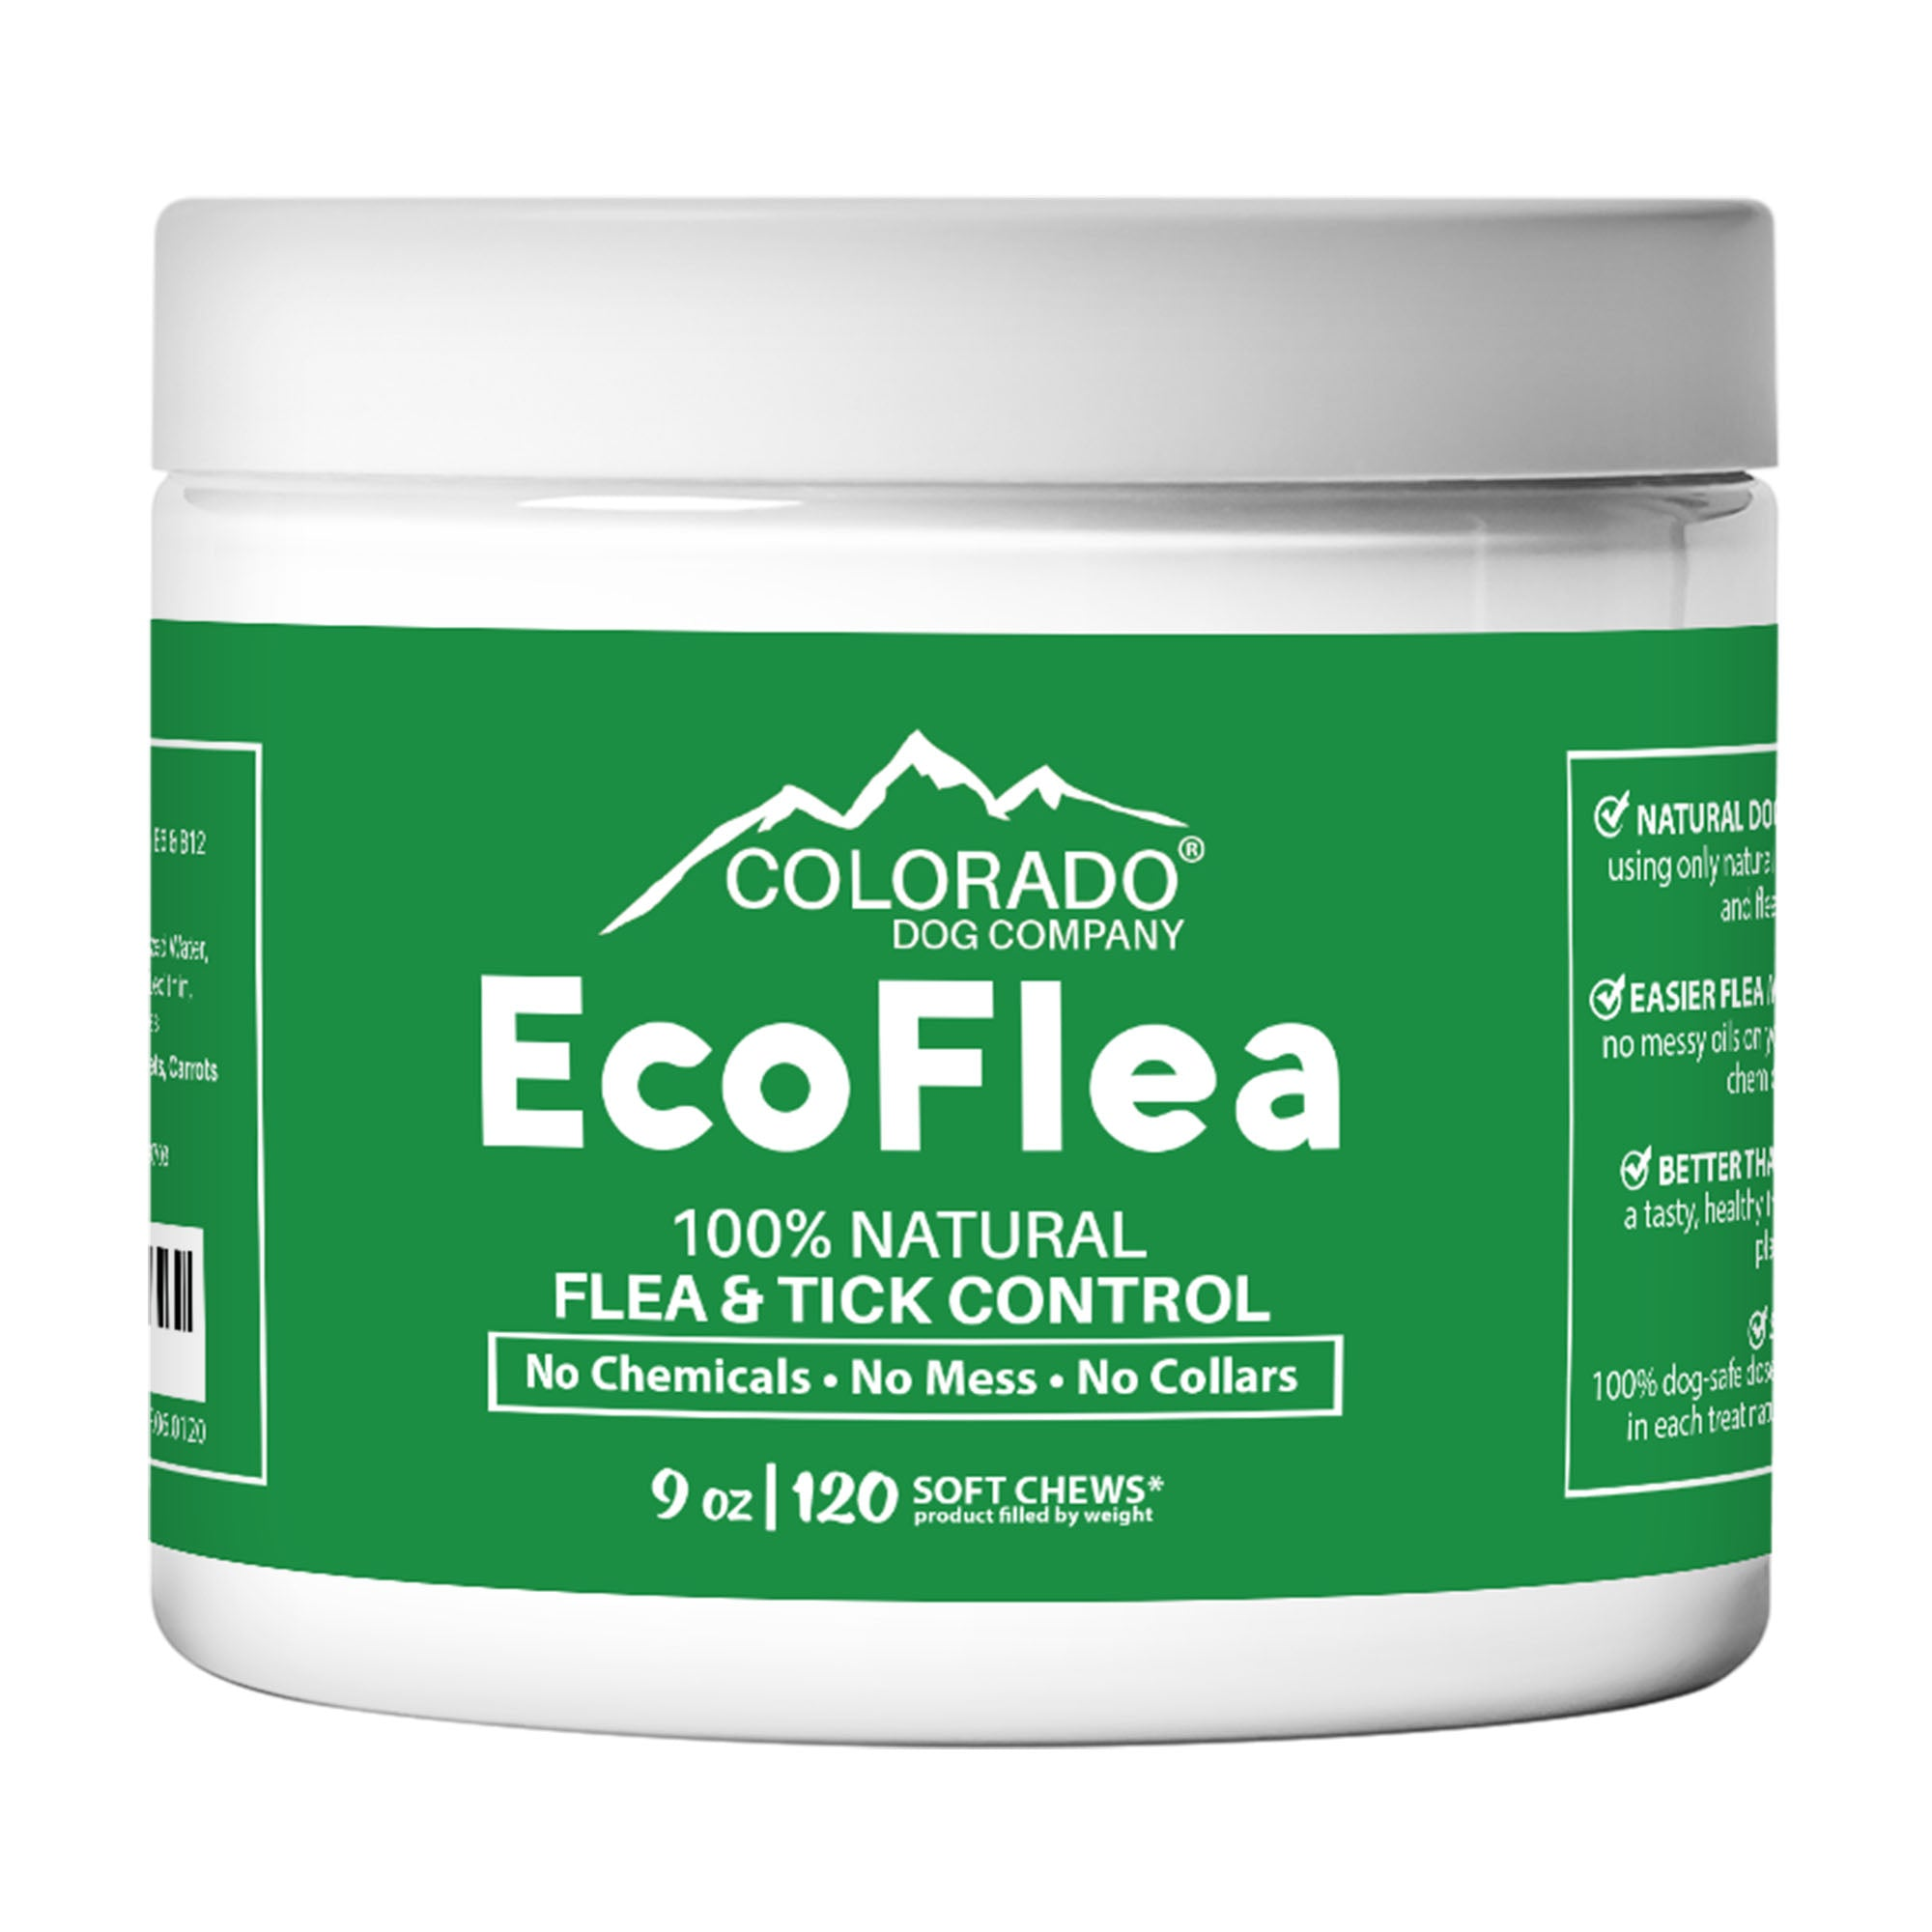 EcoFlea - all Natural Chewable Dog Treats for Flea and Tick Treatment and Prevention